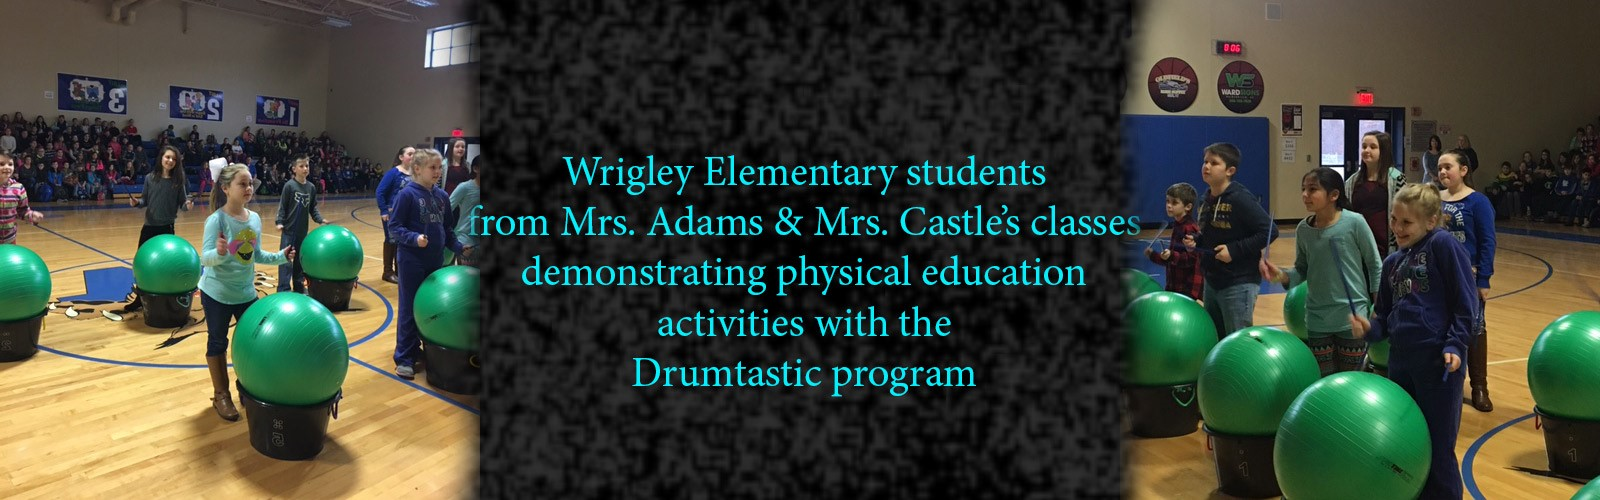 Mrs. Amber Adams class demonstrating physical education activities with the Drumtastic program at Wrigley Elementary